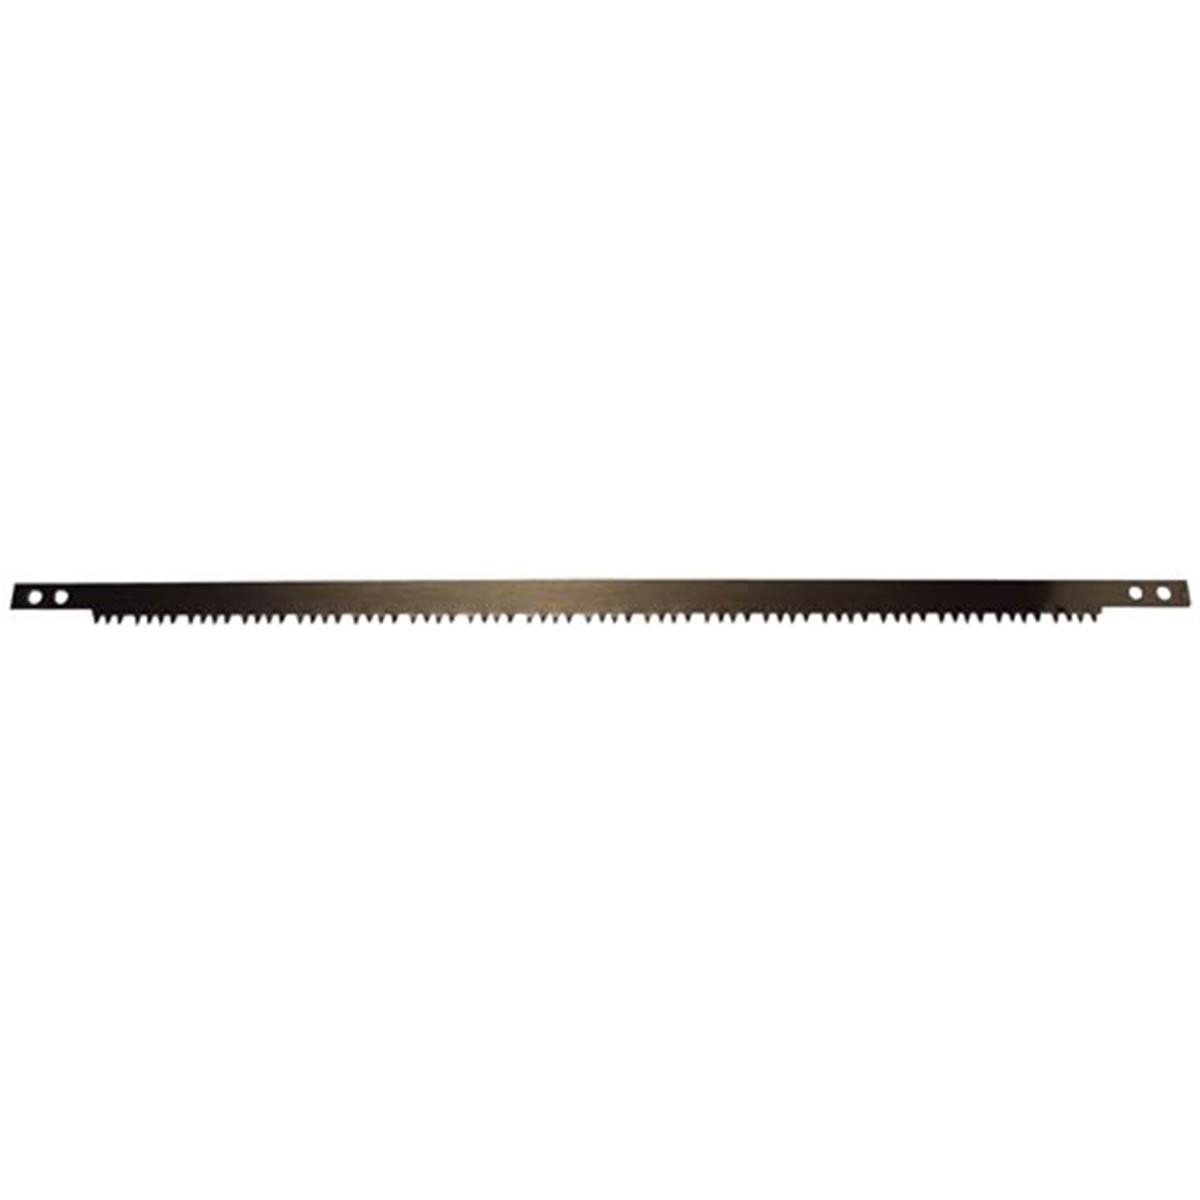 Modeco Bow Saw Replacement Blade (Frame Saw Replacement Blade)